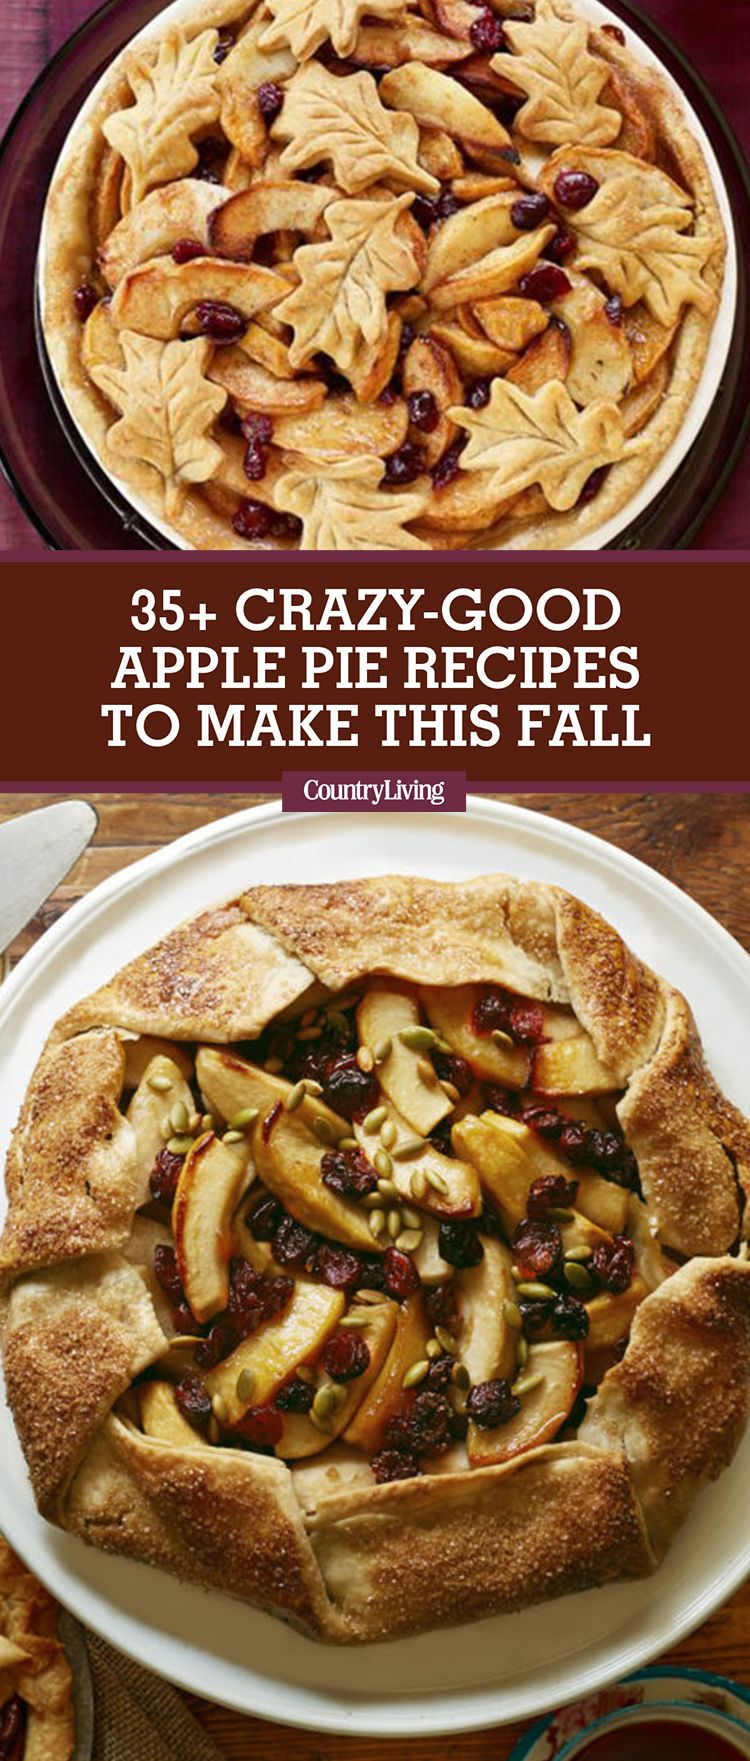 50 best apple pie recipes how to make homemade apple pie from scratch